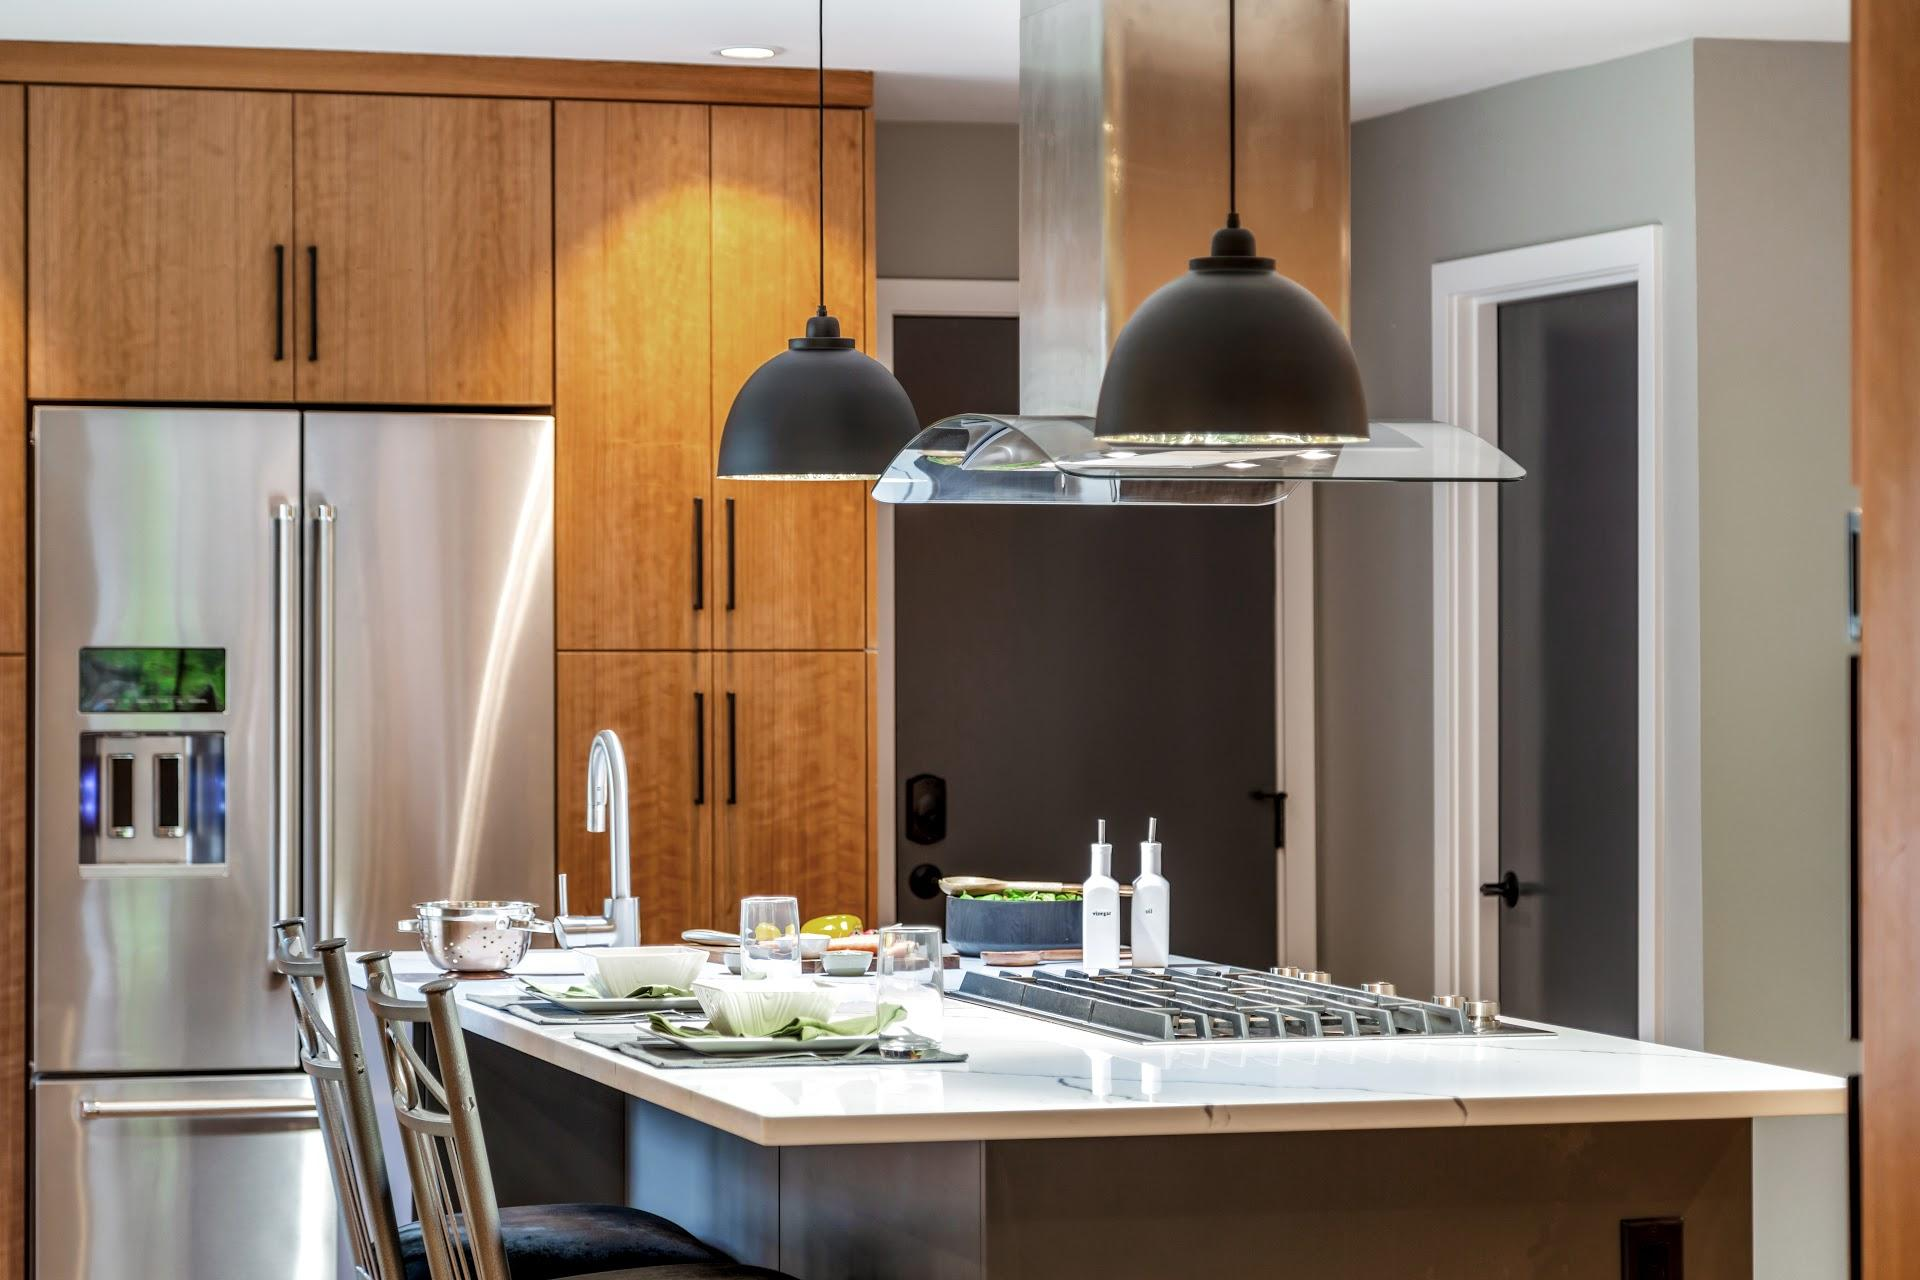 Stunning Kitchen Remodel with Island Stove Sink and High-Top Chairs